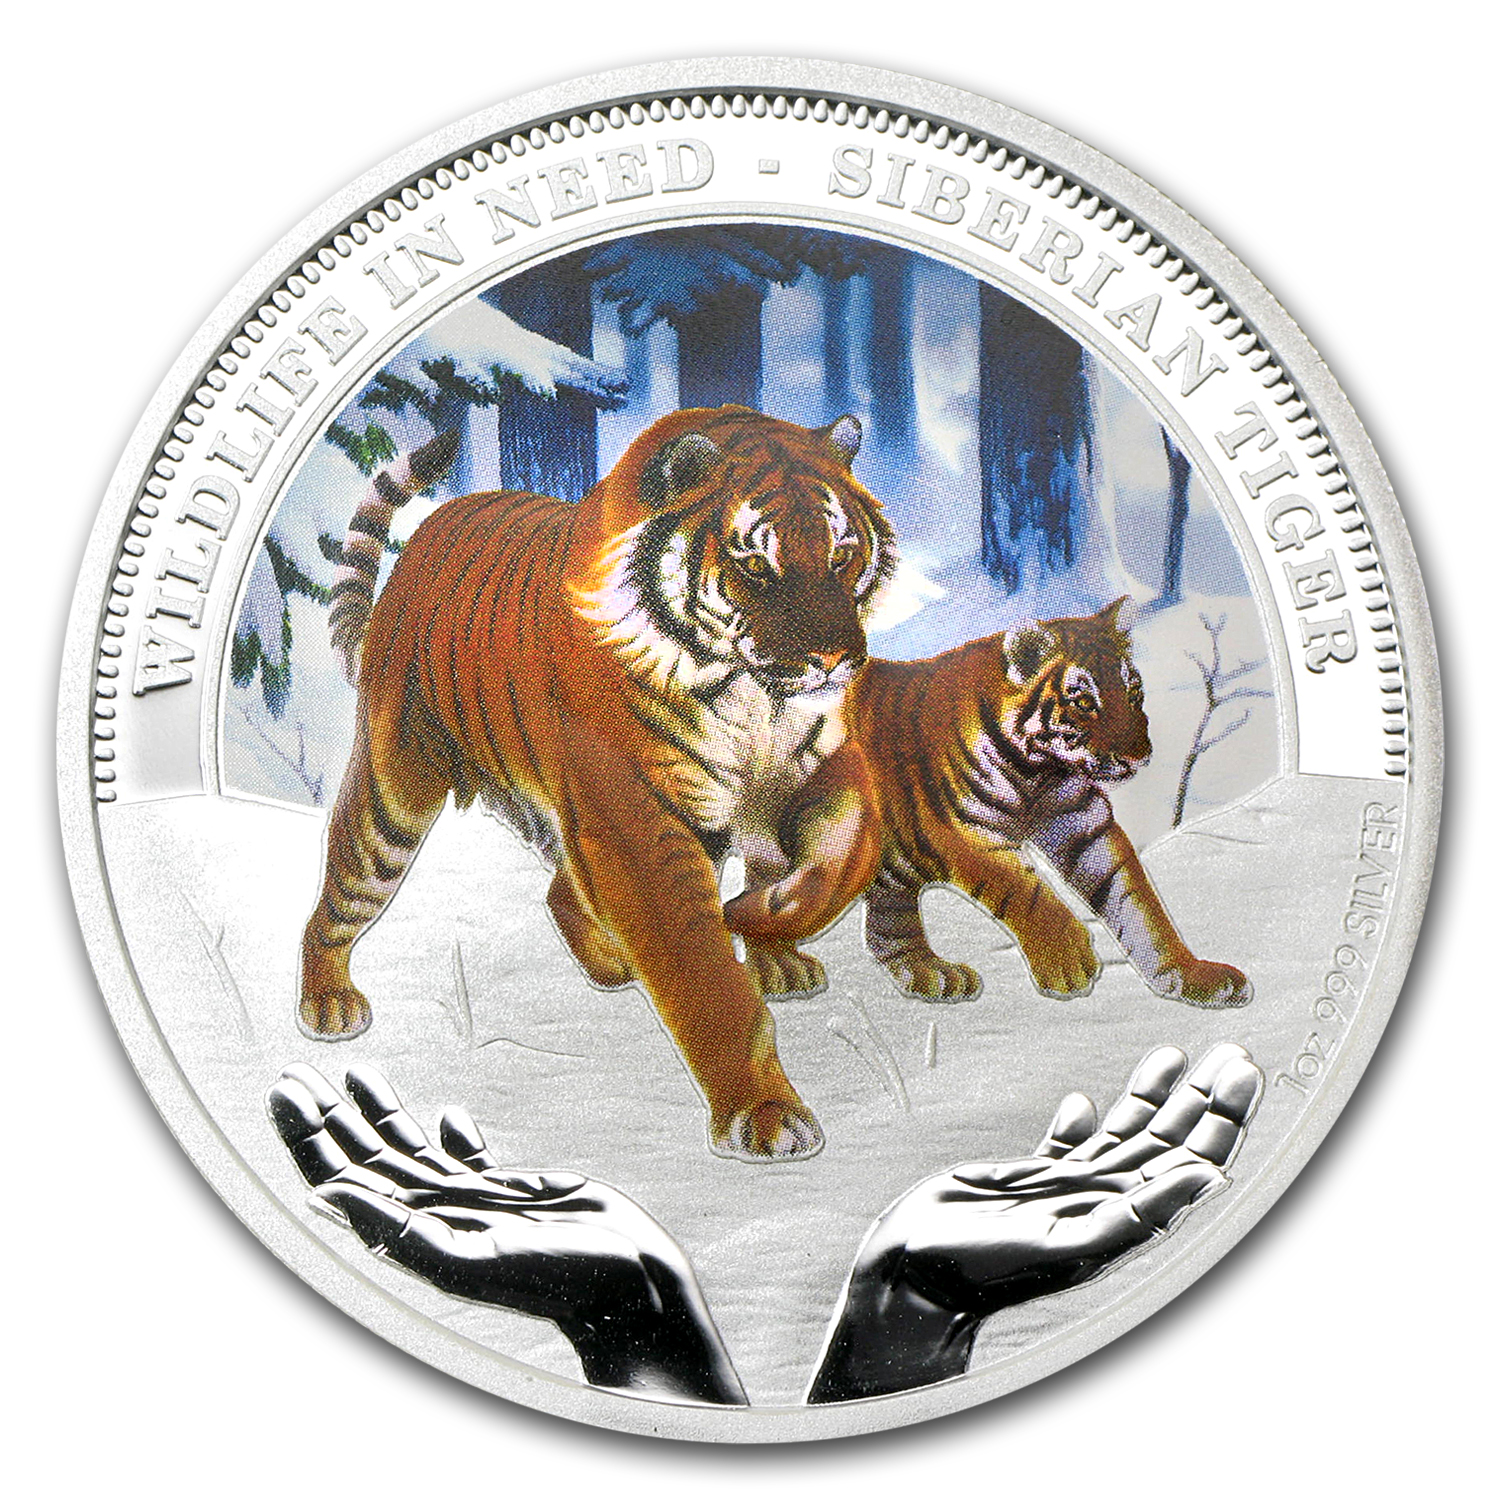 2012 1 oz Proof Silver Siberian Tiger - Wildlife in Need Series